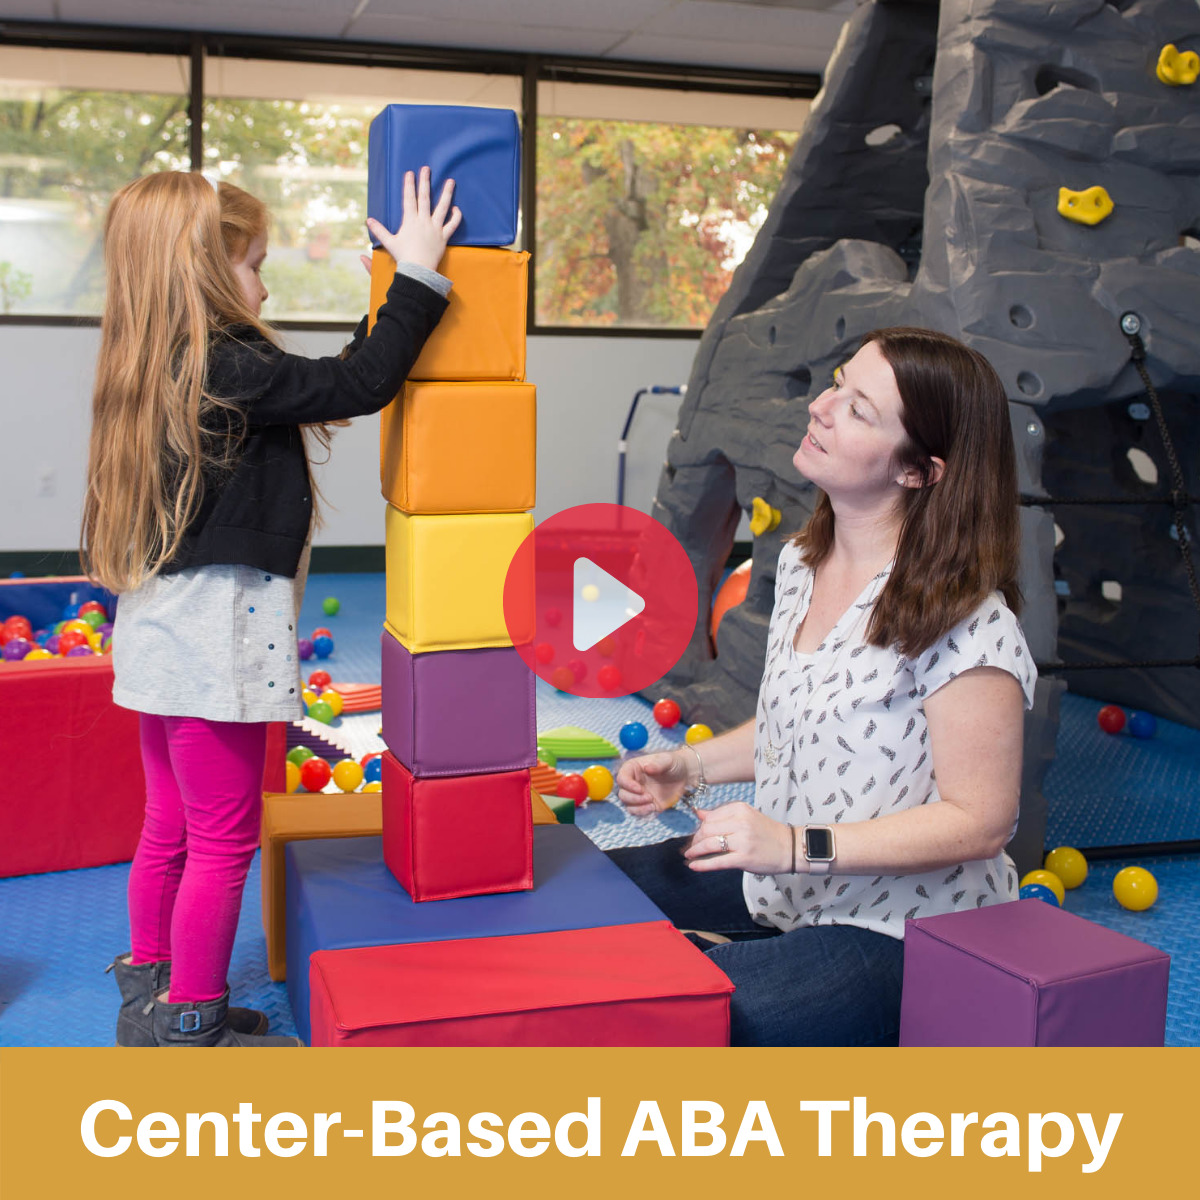 Center-Based ABA Therapy Video